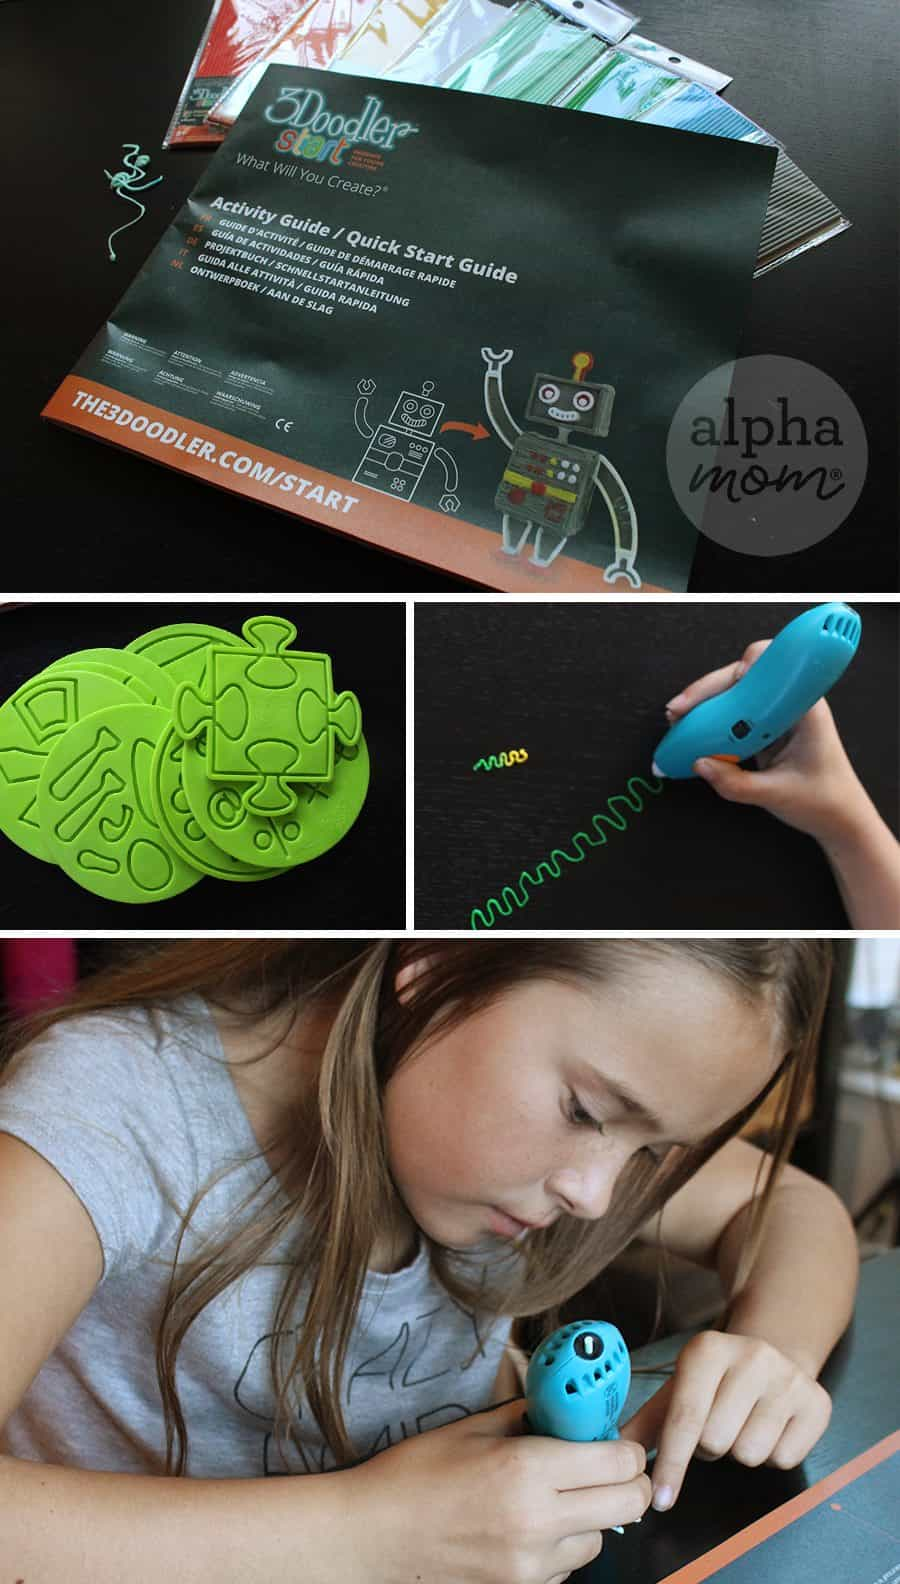 3Doodler Start: Should You Buy It? An honest review from a craft mom. (instruction guide) by Brenda Ponnay for Alphamom.com